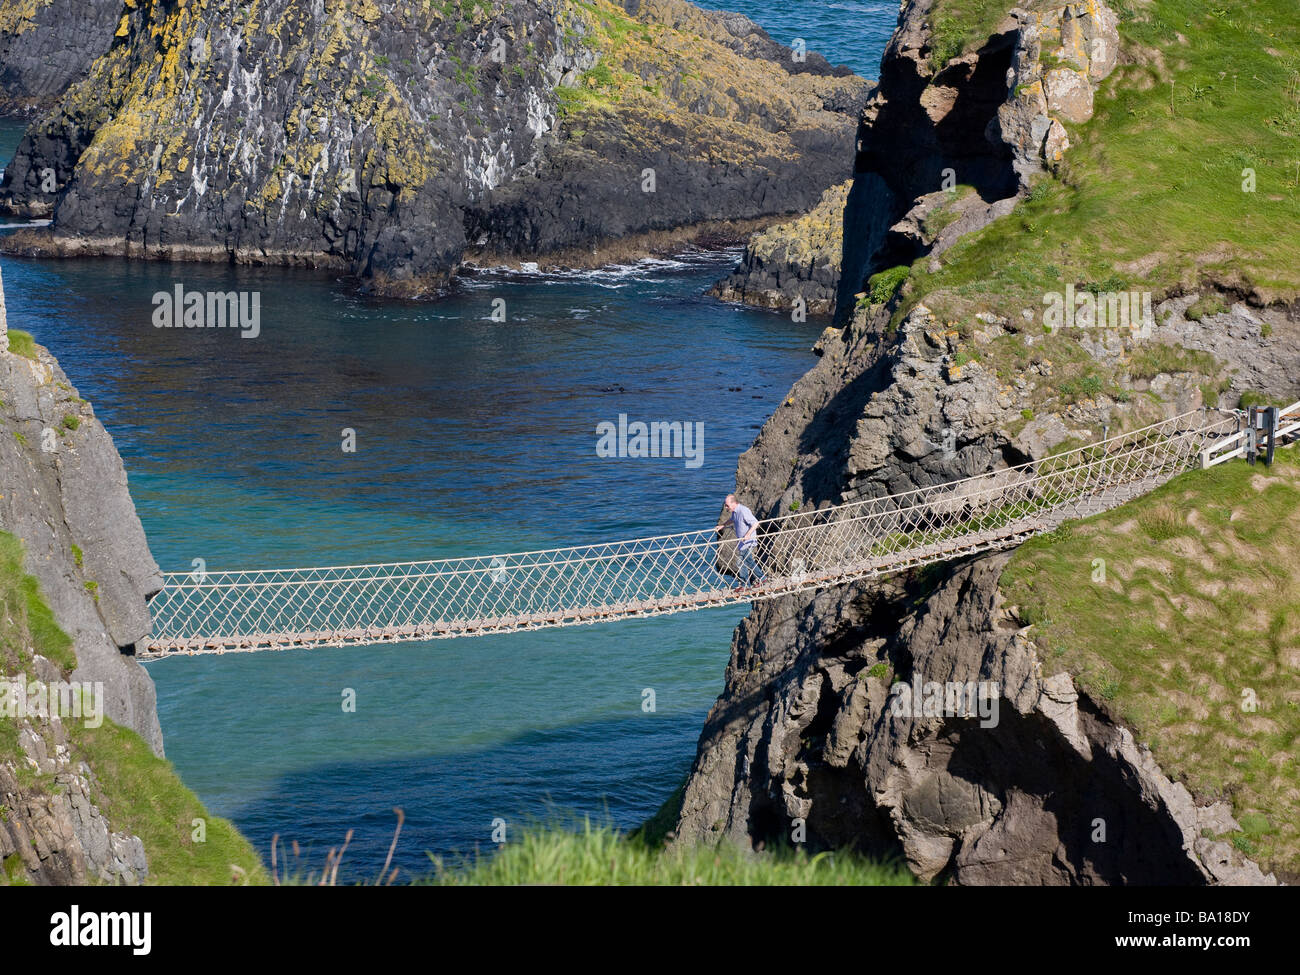 The return trip. A tourist crosses the famous rope bridge over the bright blue and green water from the island  - Stock Image